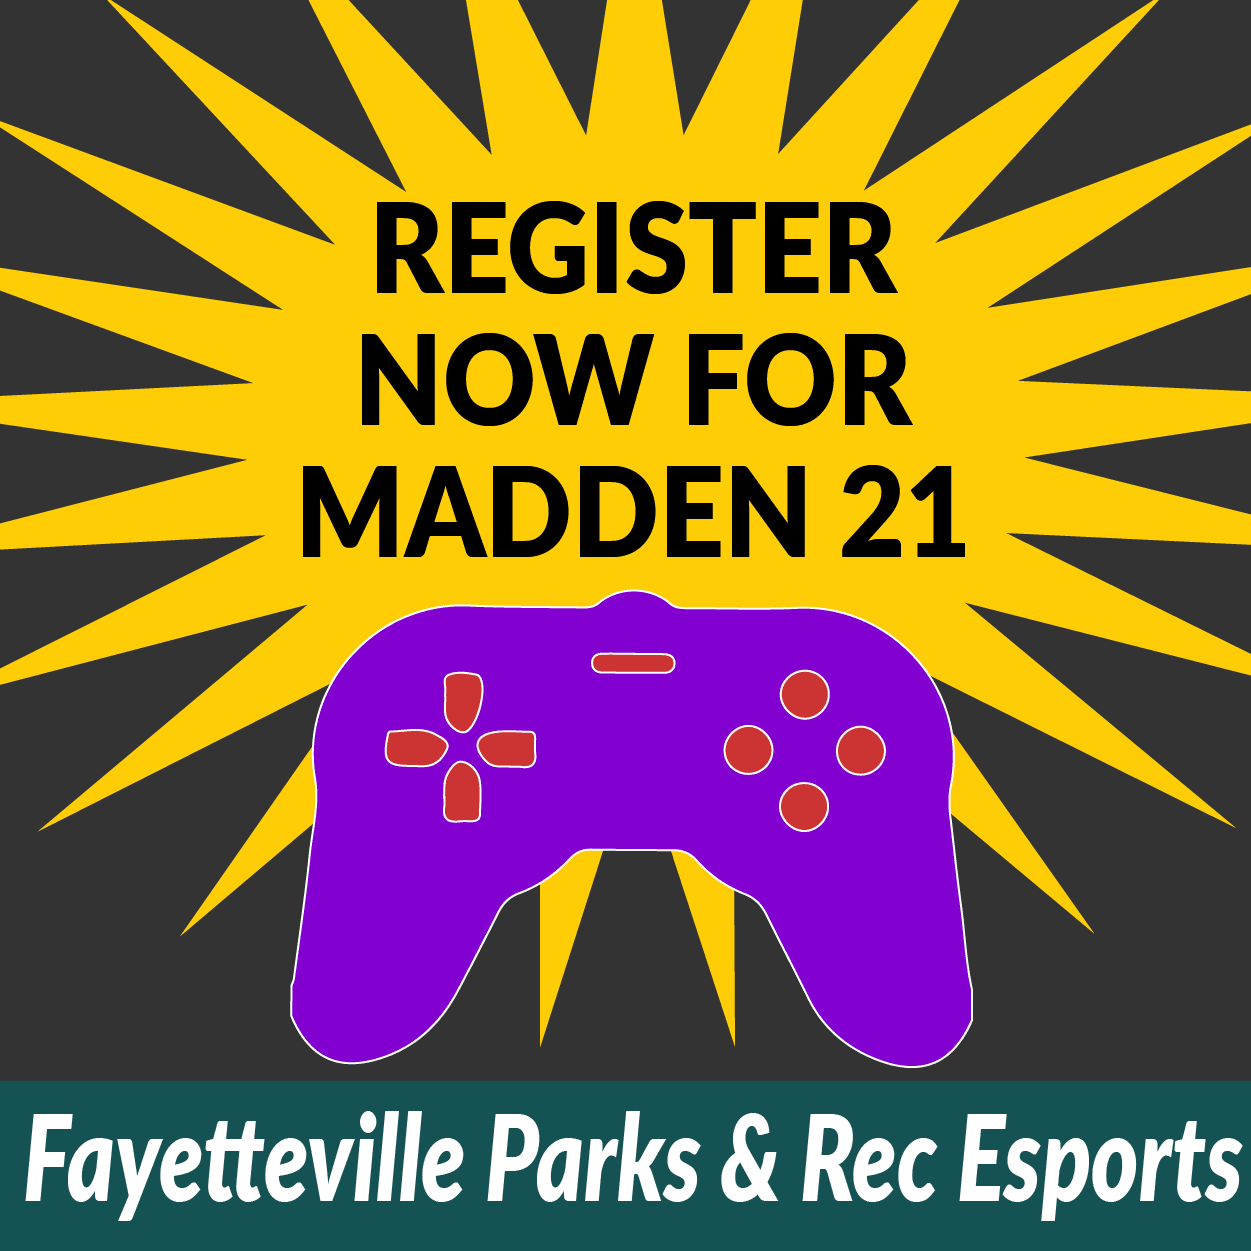 Register now for Madden 21 league